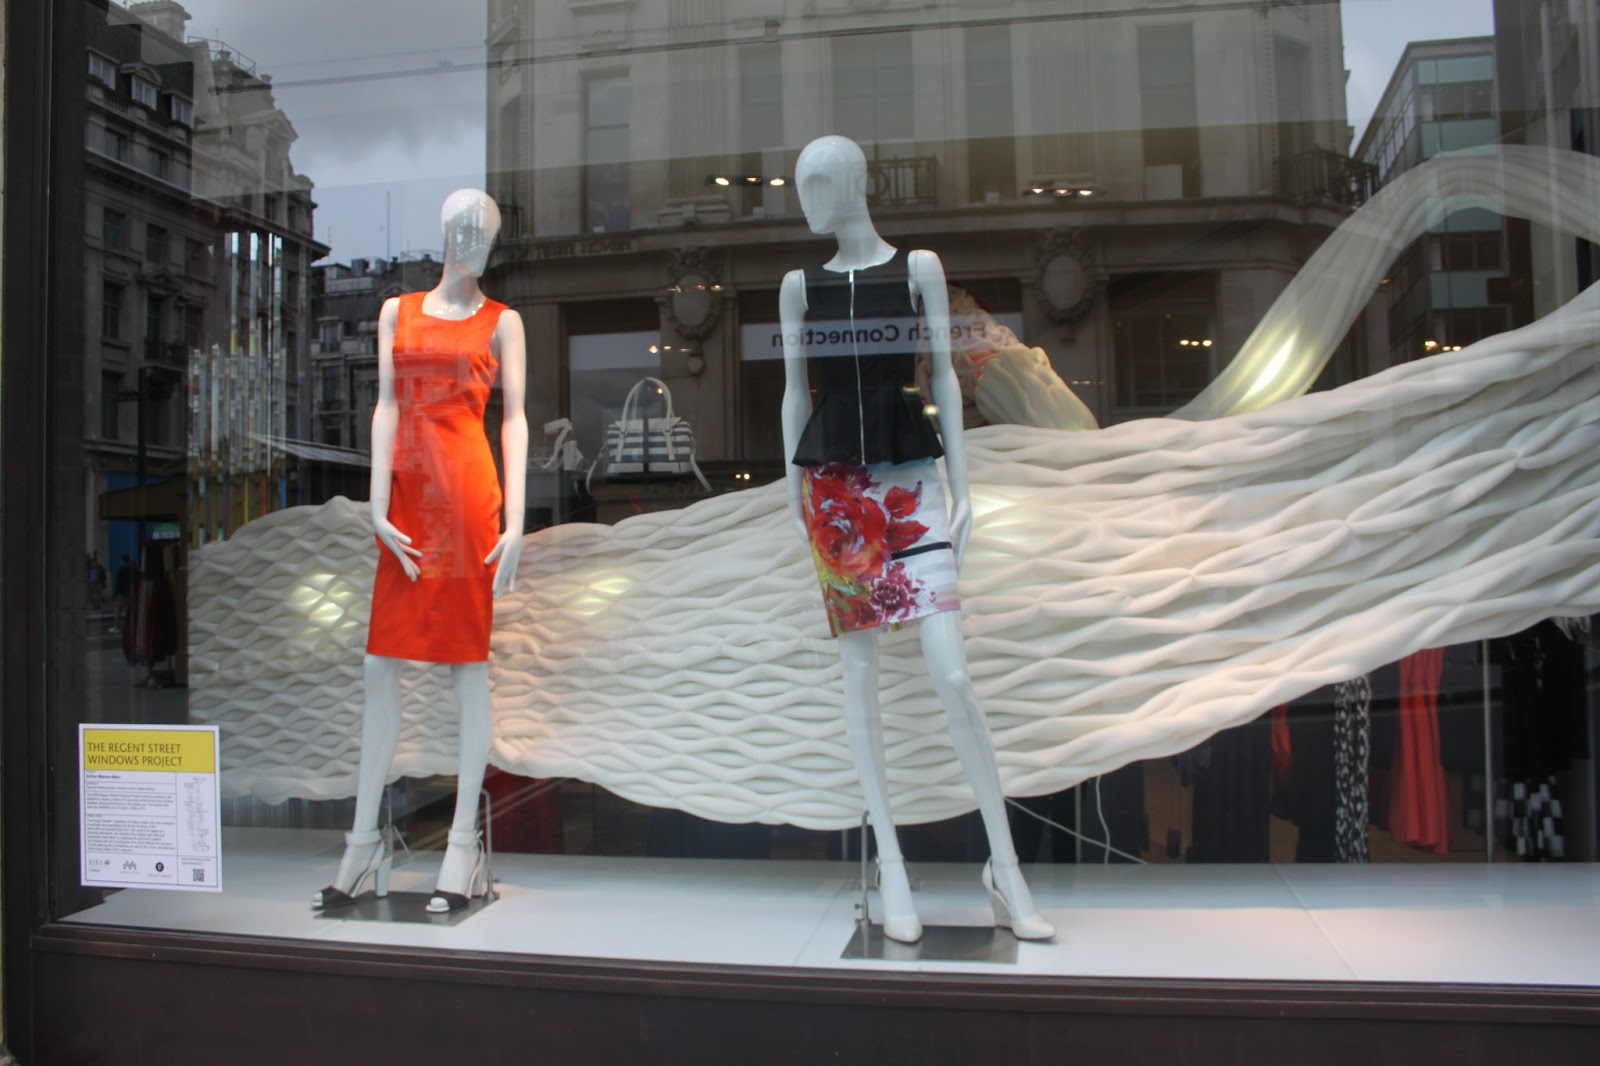 The regent street windows project 2012 - The White Textured Installation Adds To The Colours In The Forefront And Lifts It